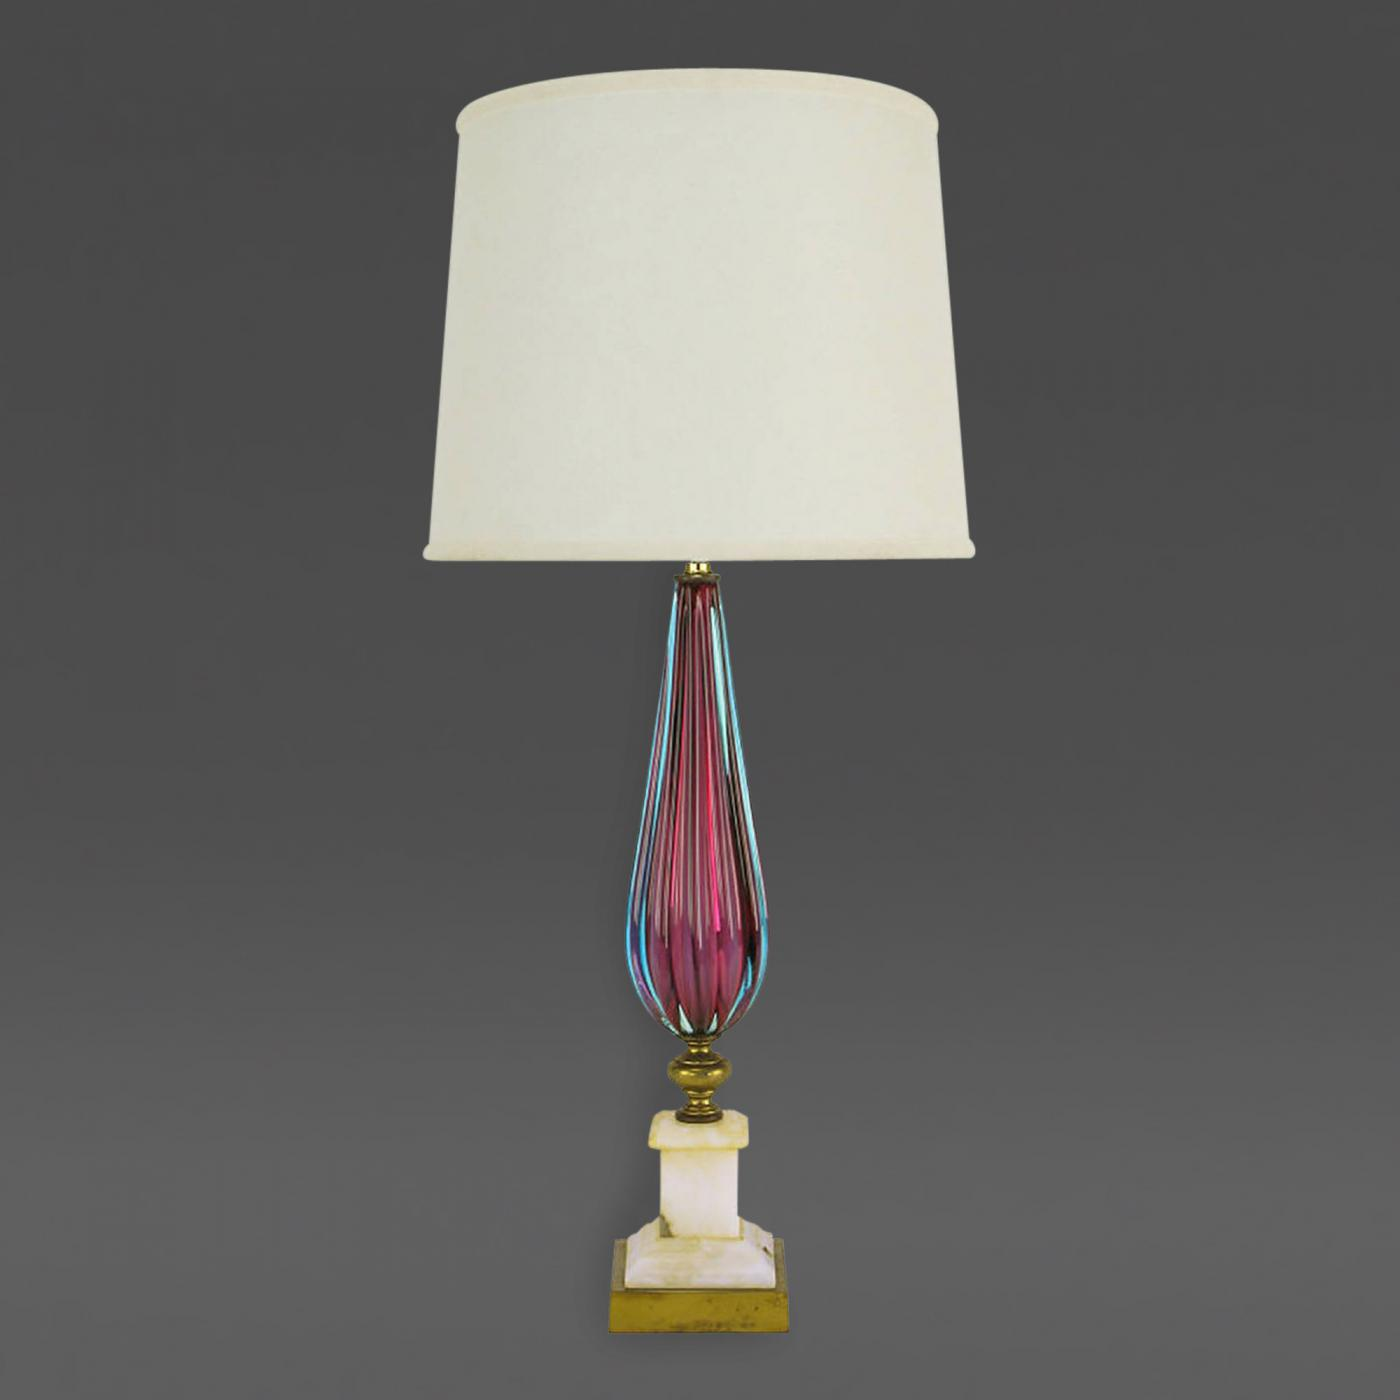 Reeded amethyst aquamarine murano glass table lamp listings furniture lighting table lamps reeded amethyst aquamarine murano glass aloadofball